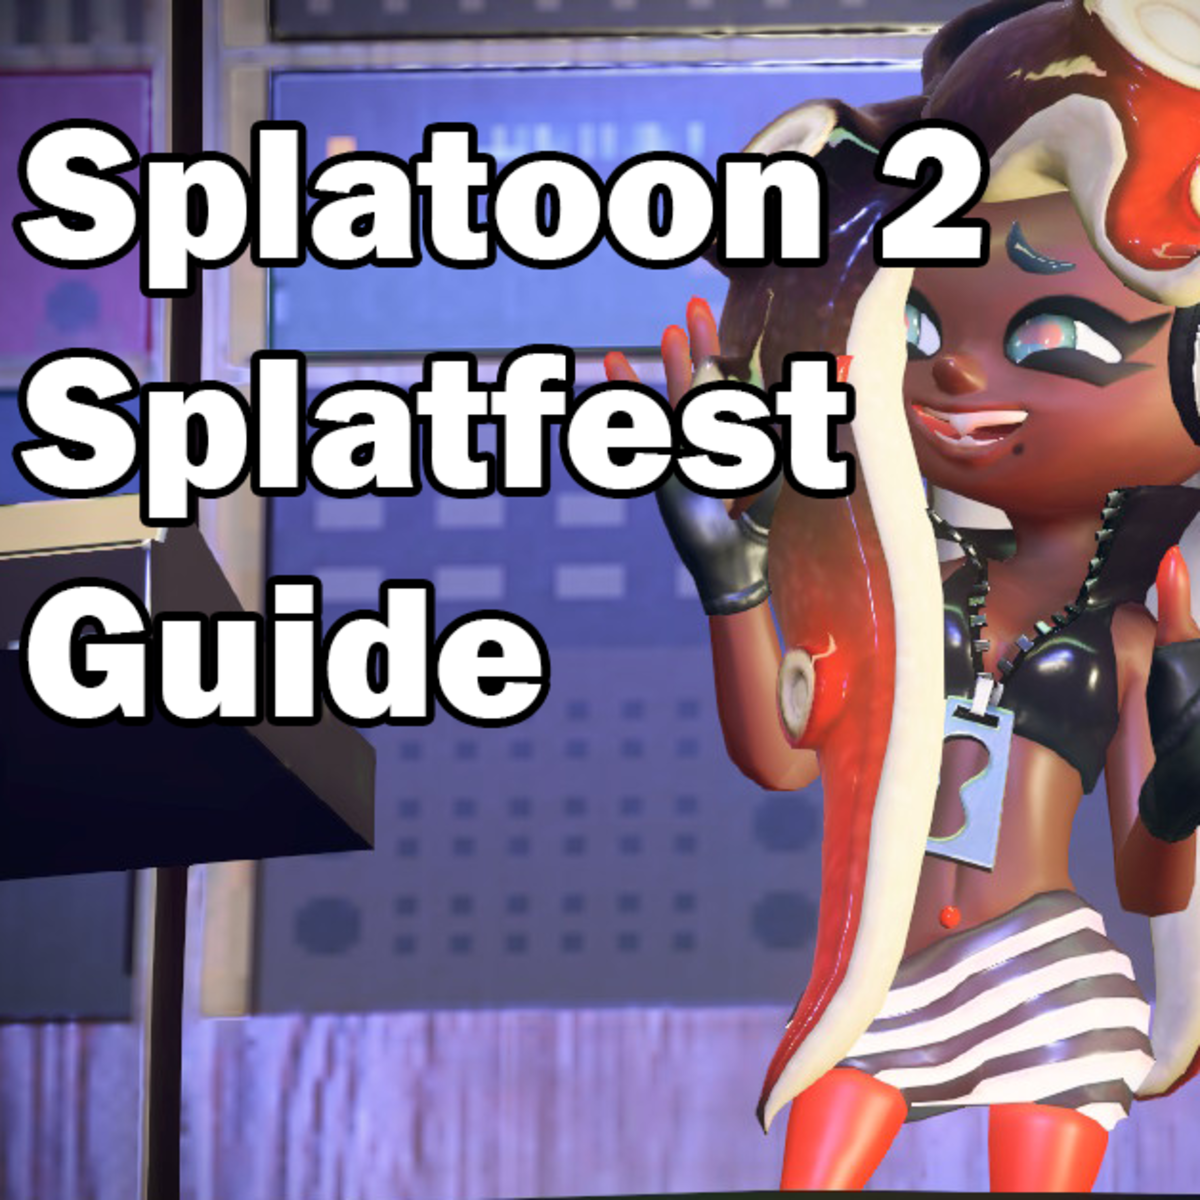 Splatoon 2 Splatfest Guide for New and Returning Players